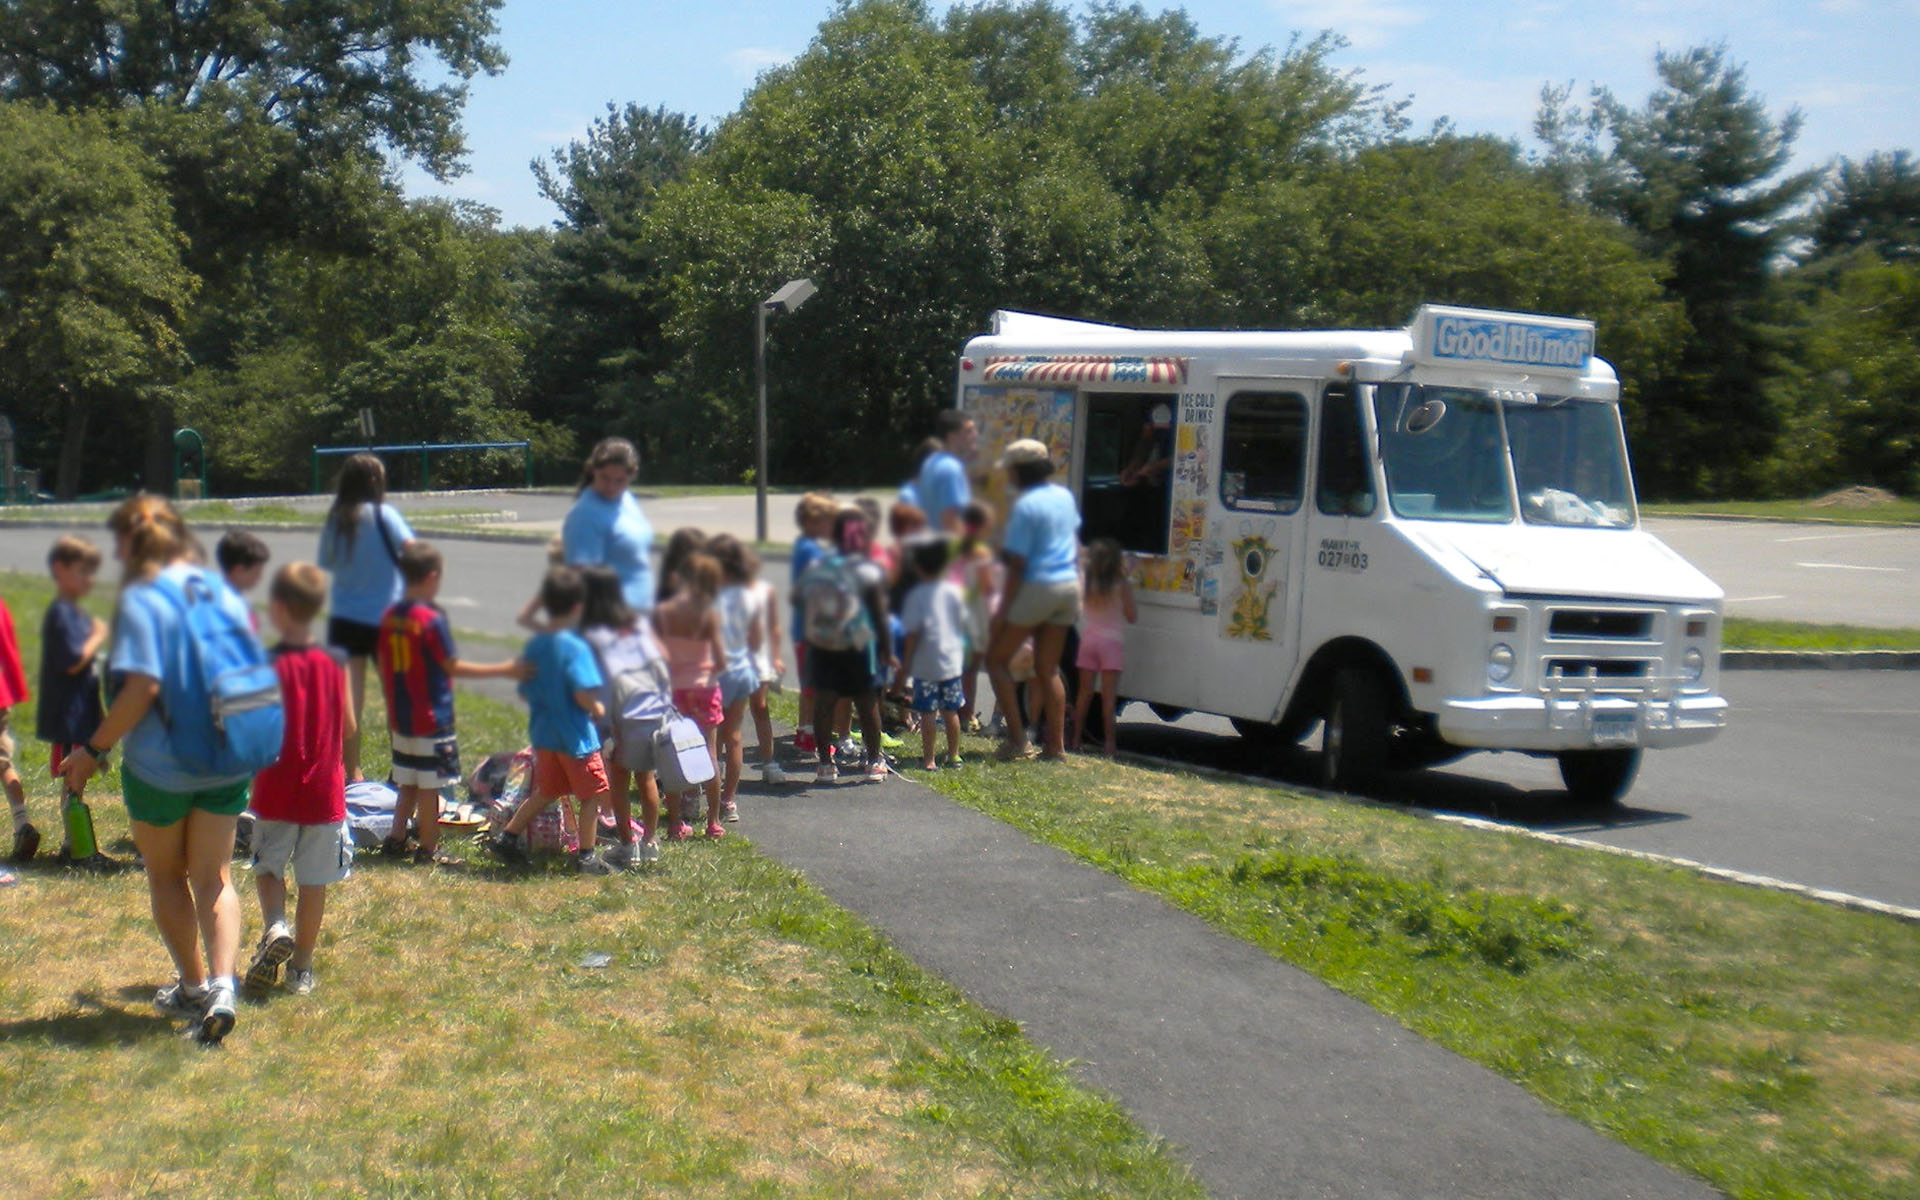 Ice cream for fun truck - New York summer - events - Photo gallery 2